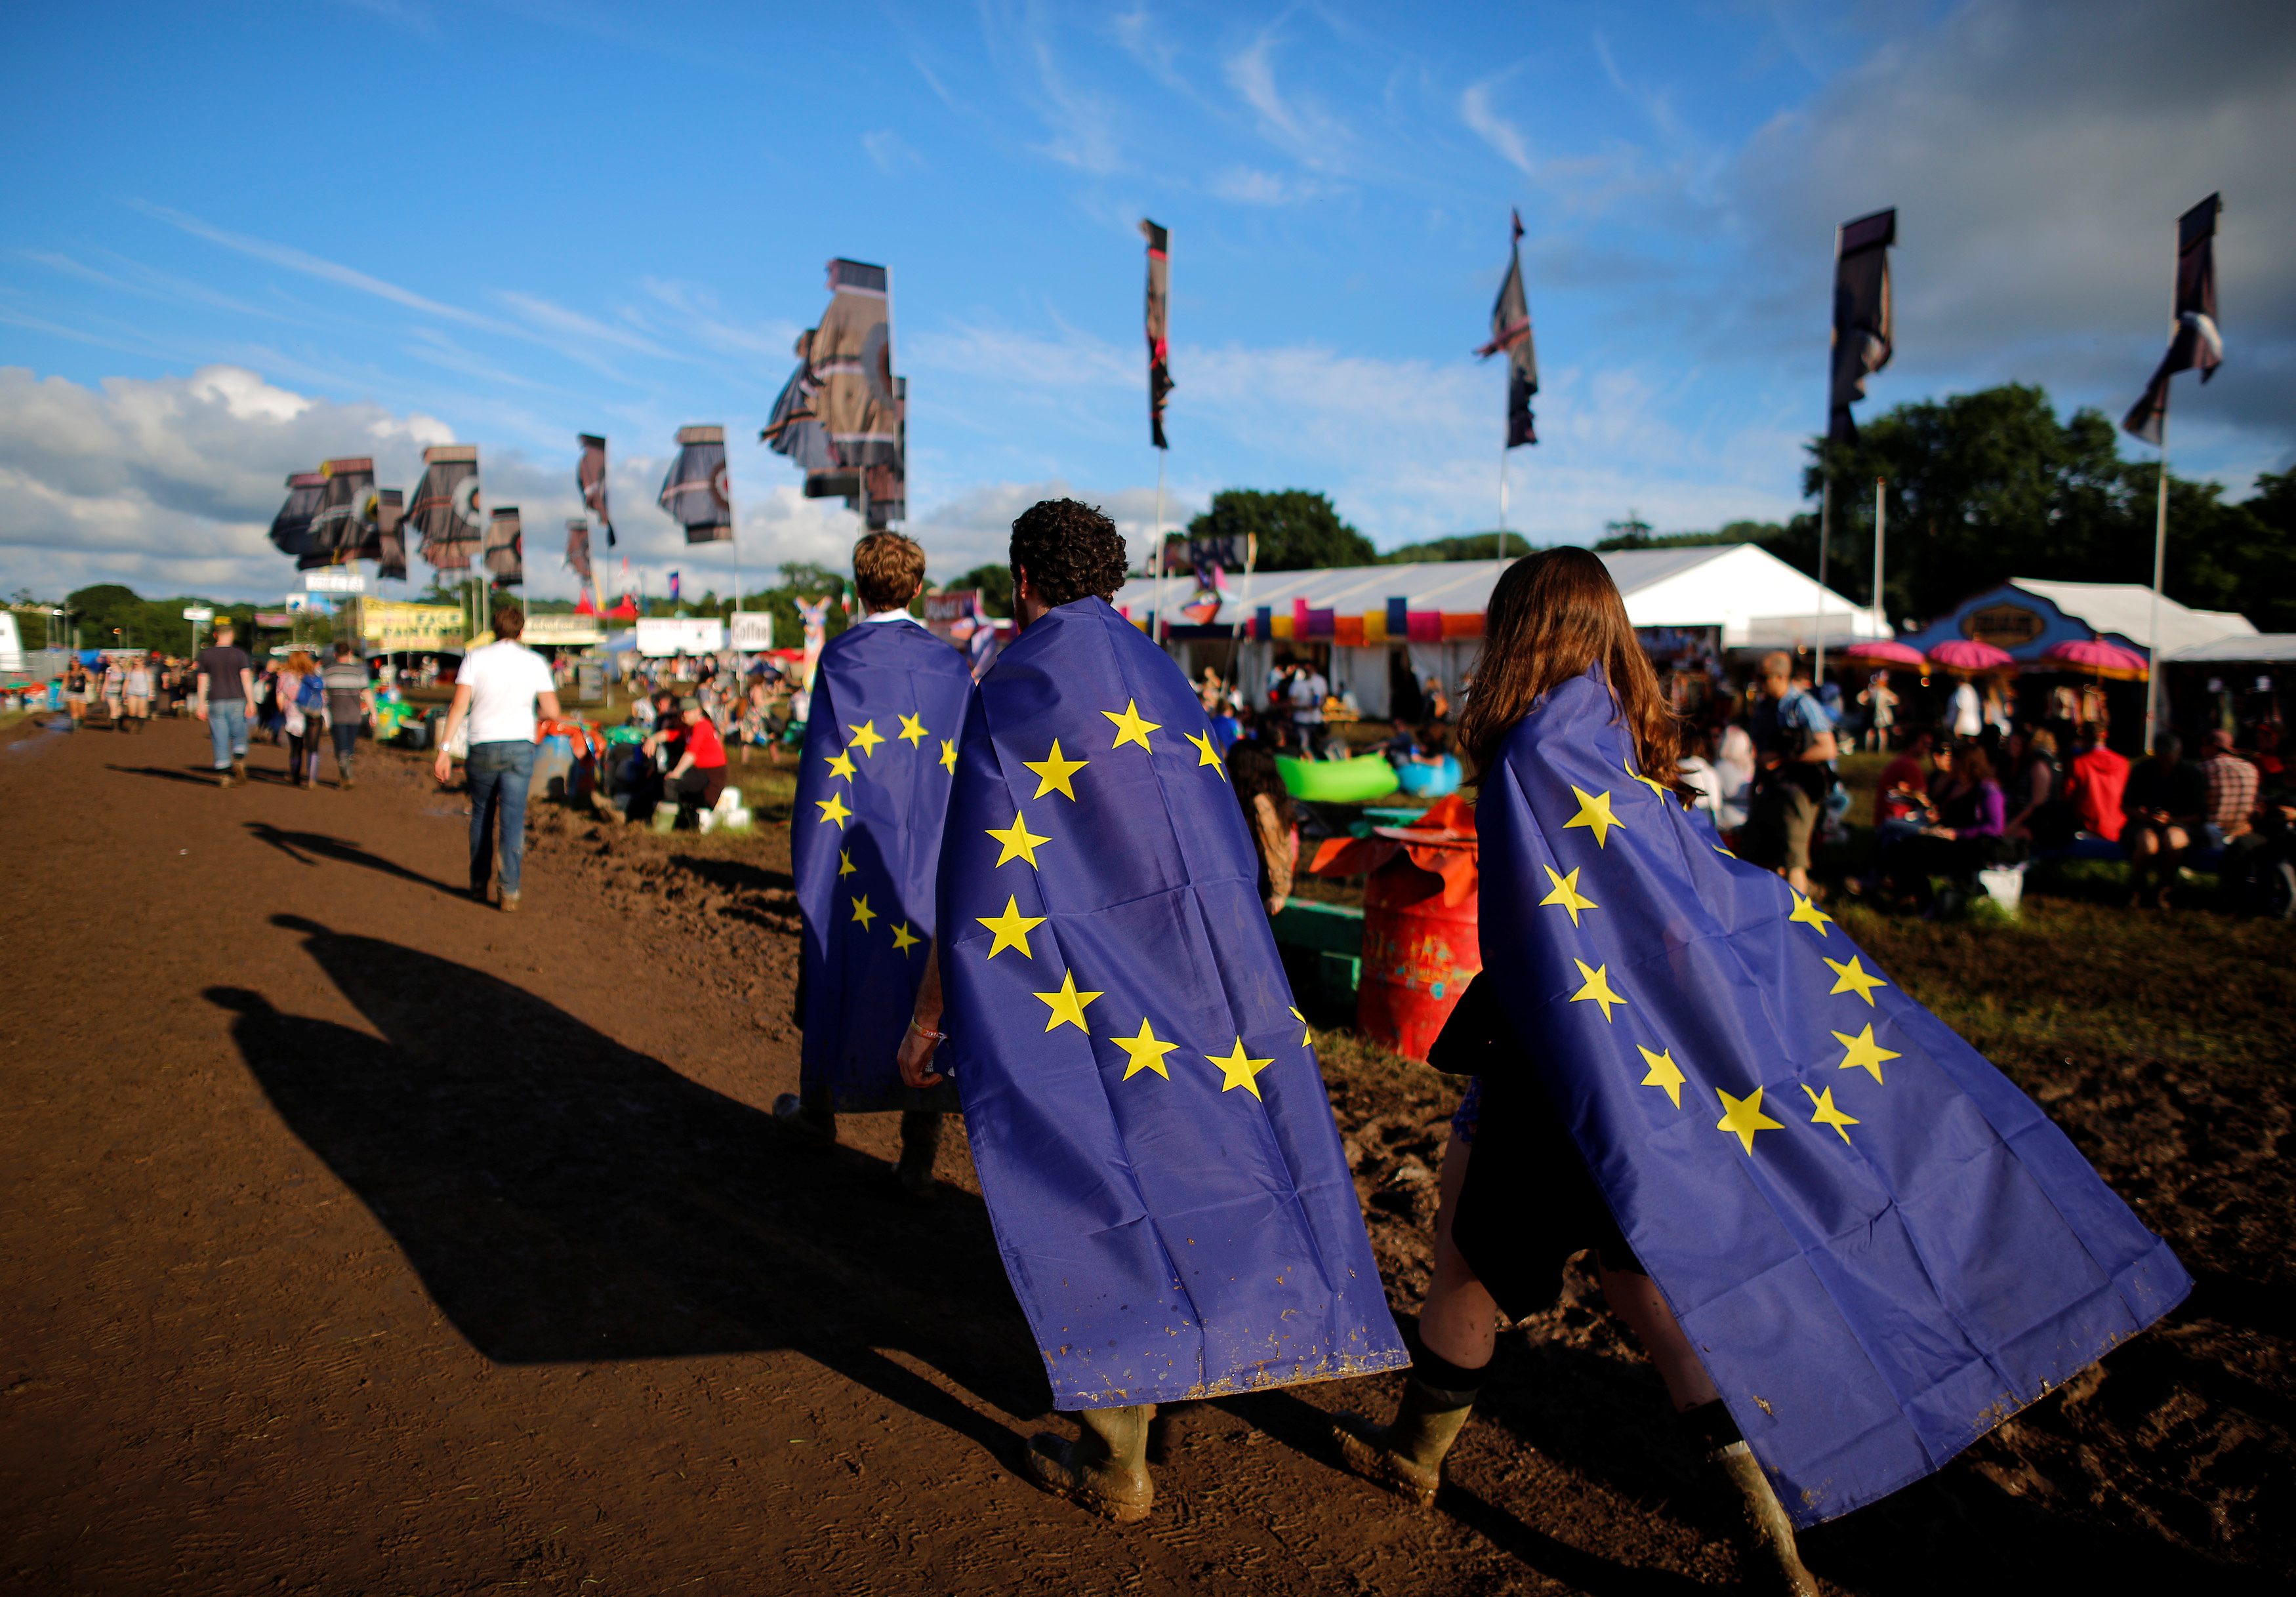 Revelers wrapped in European Union flags walk at Worthy Farm in Somerset during the Glastonbury Festival, Britain, June 22, 2016